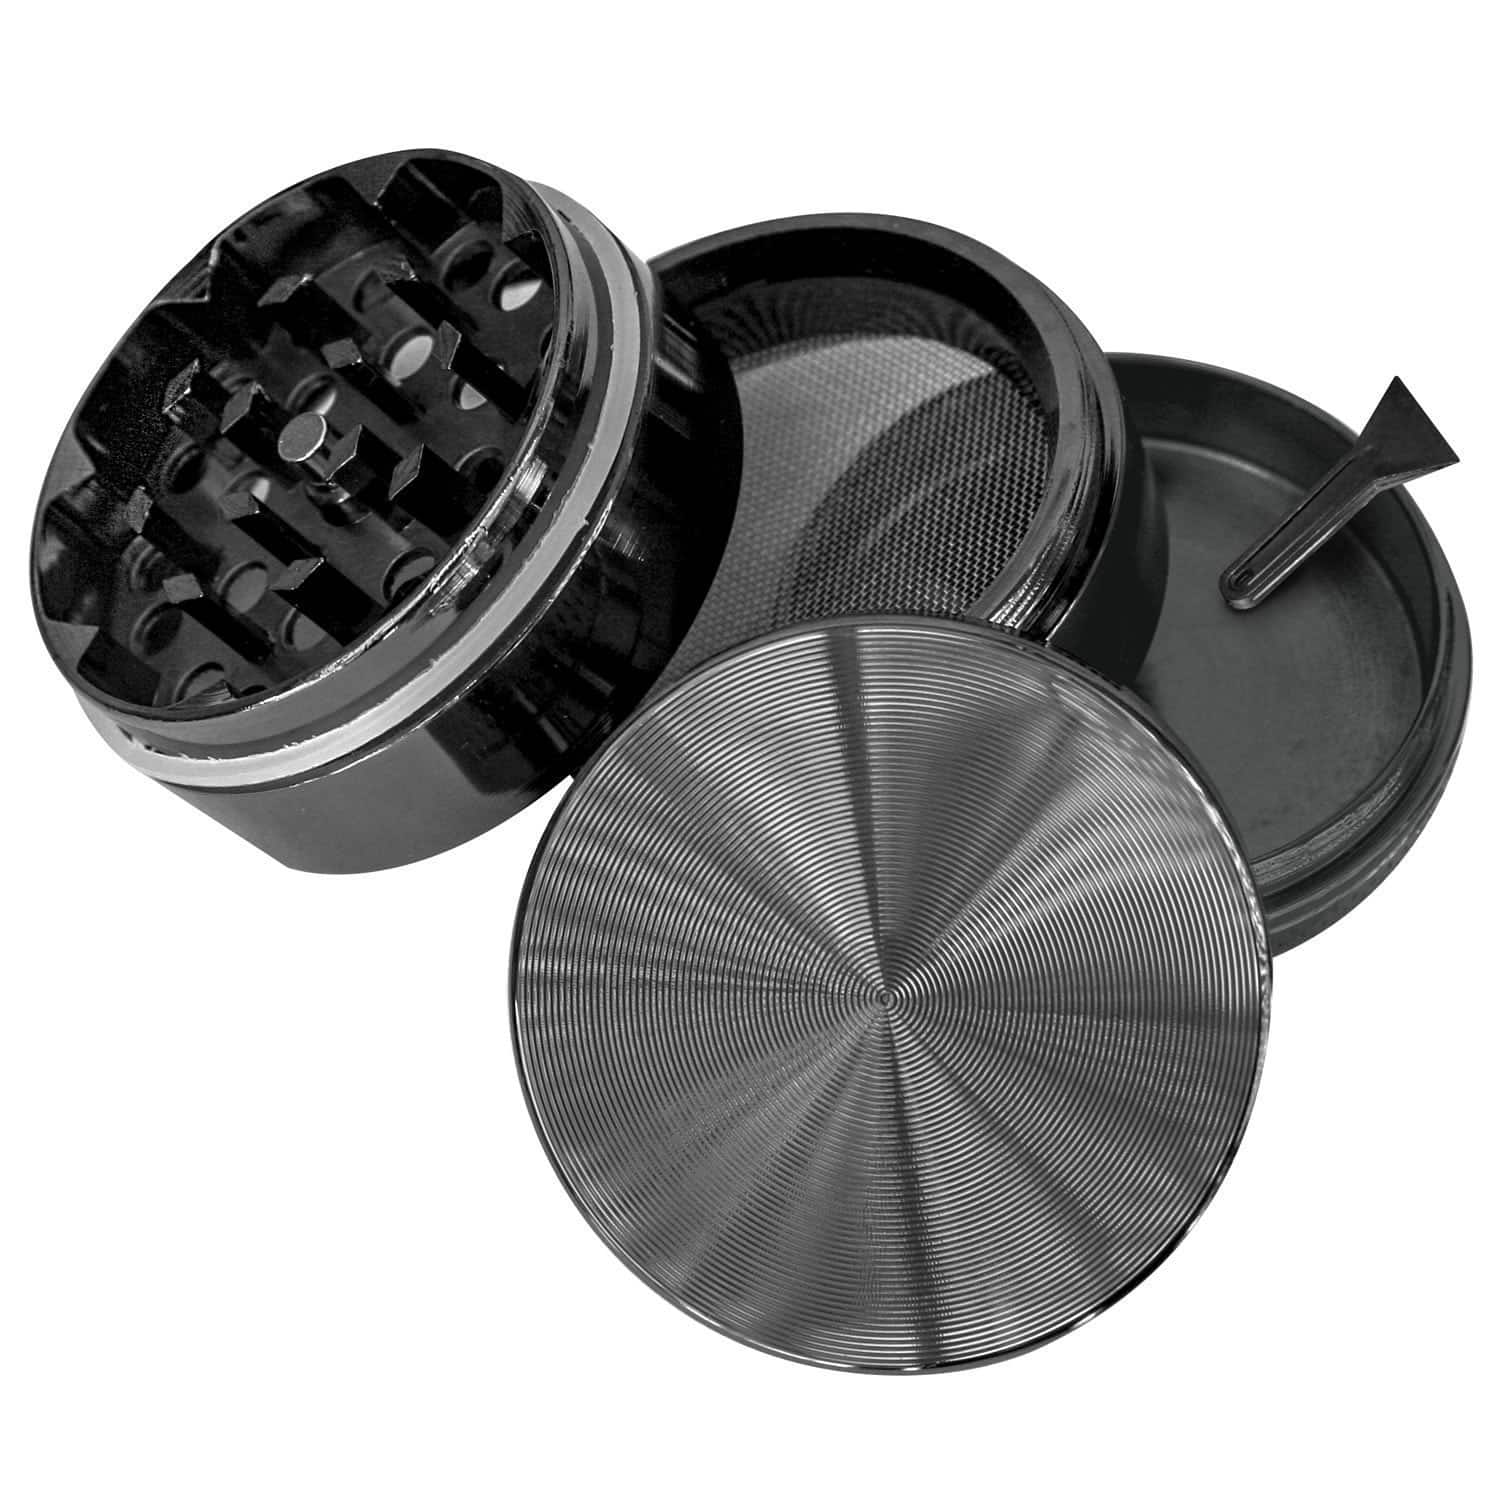 Goliath Industries 5 piece Titanium Herb Grinder $6.75 w/ coupon and f/s with Prime